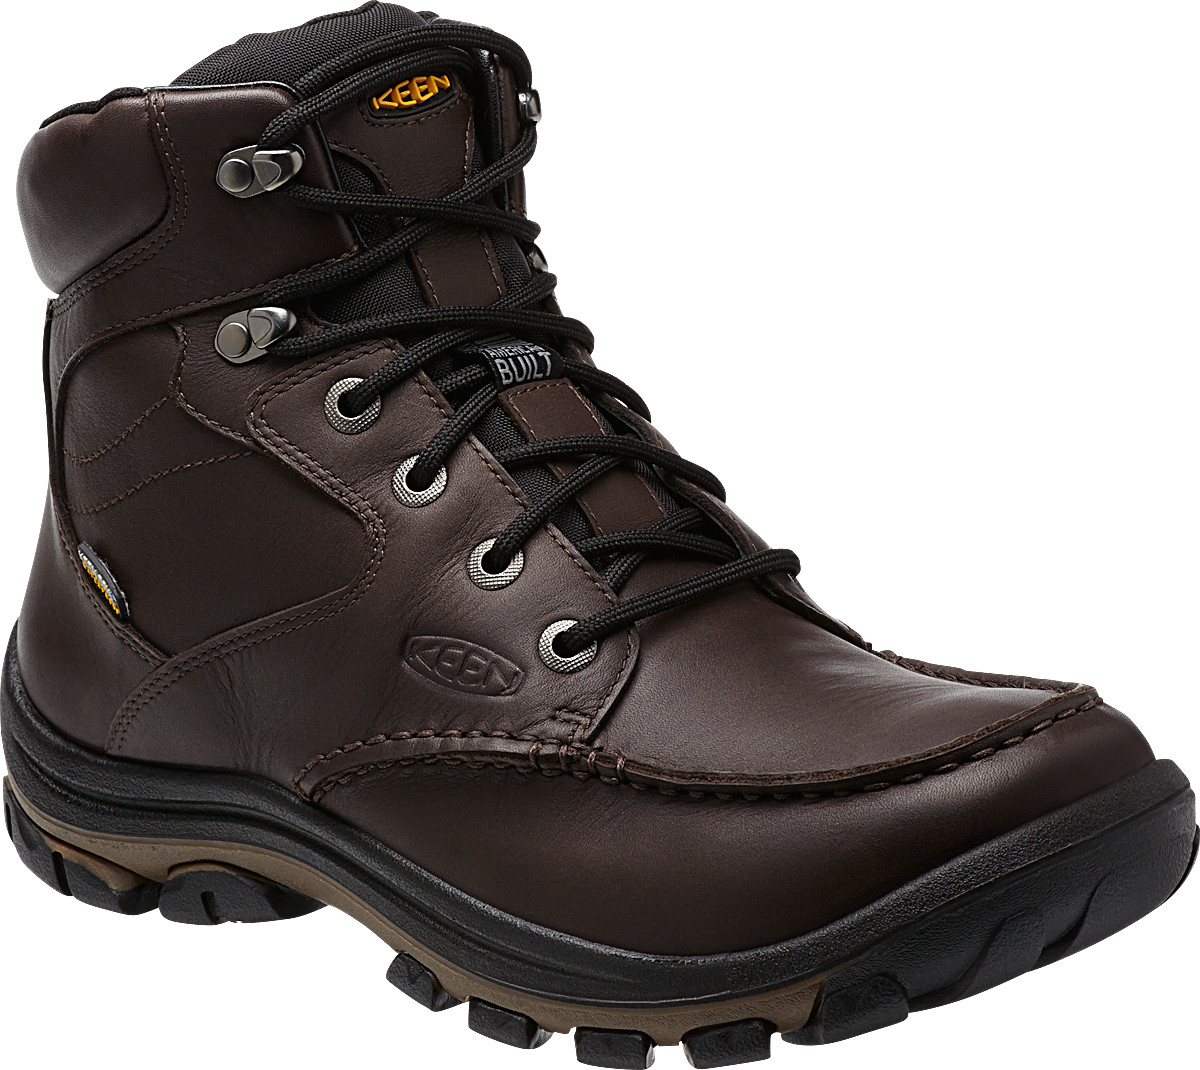 Lightweight hiking boots on a running shoe chassis continue to dominate this report. This update includes new versions like the Salomon Quest 4D 3 GTX and the Keen Targhee III. Other favorites include our best reviewed light boot, the Hoka One One Tor Ultra Hi, .